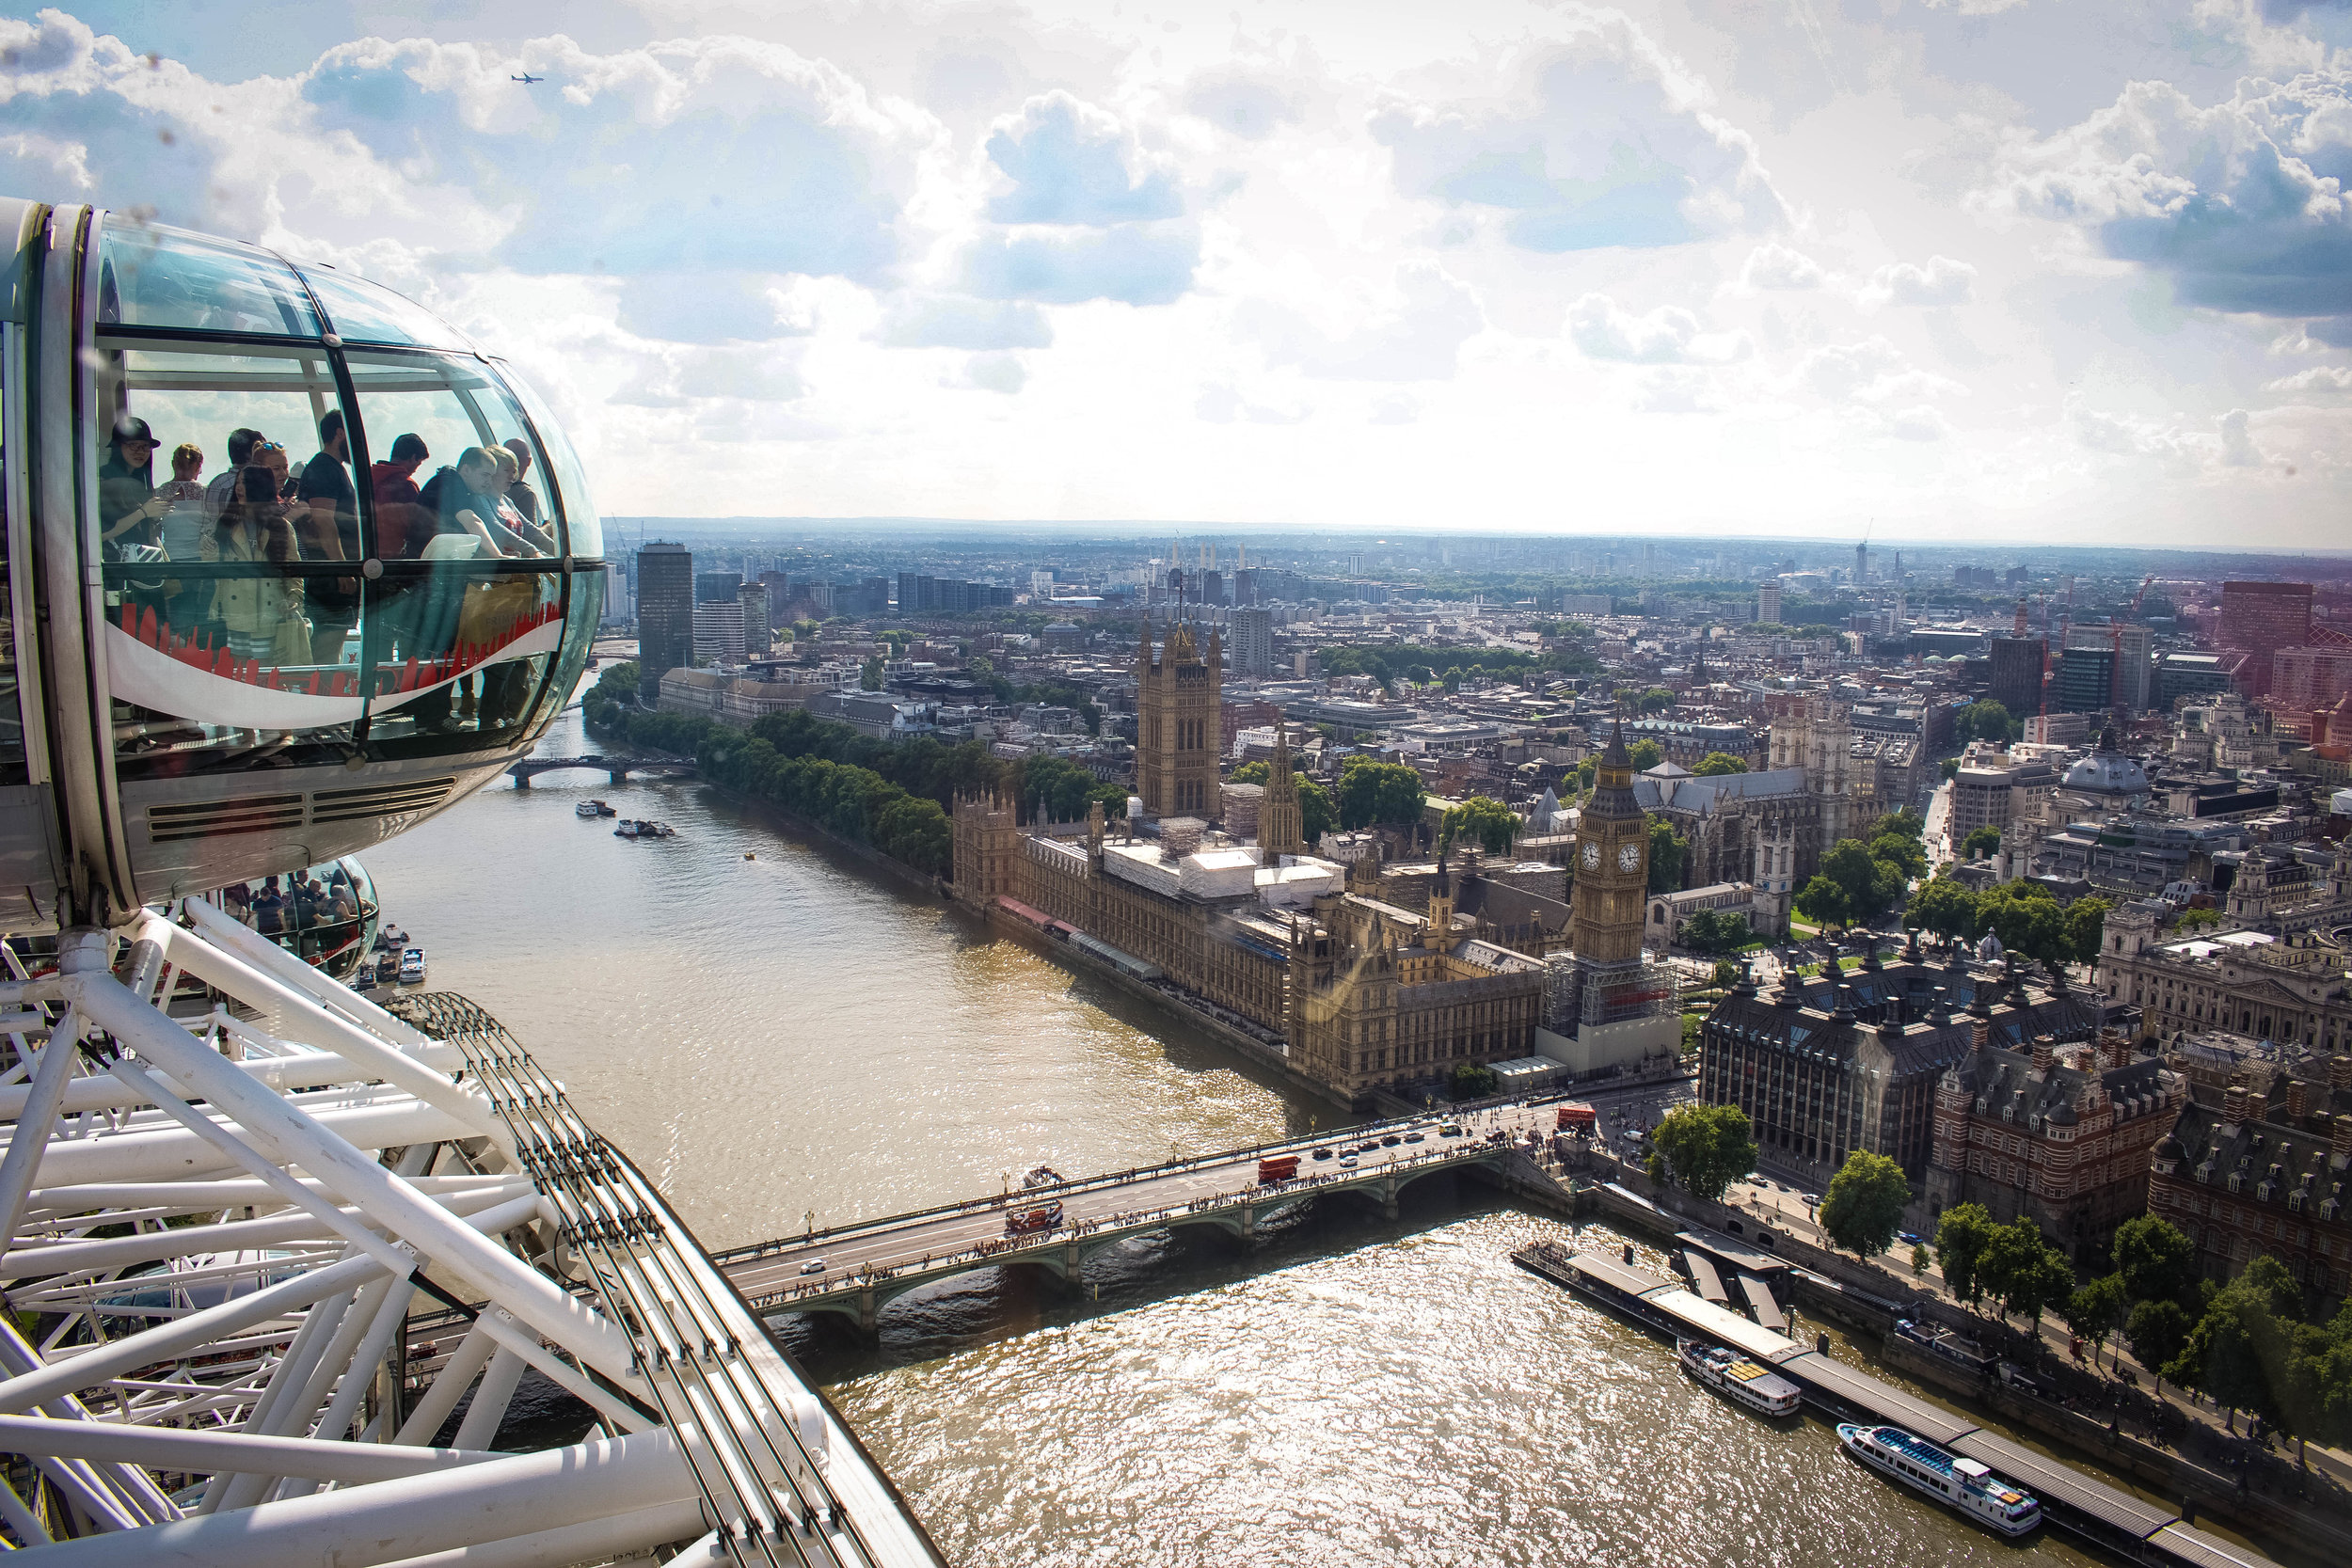 4. The London Eye - *Try the Champagne Experience!